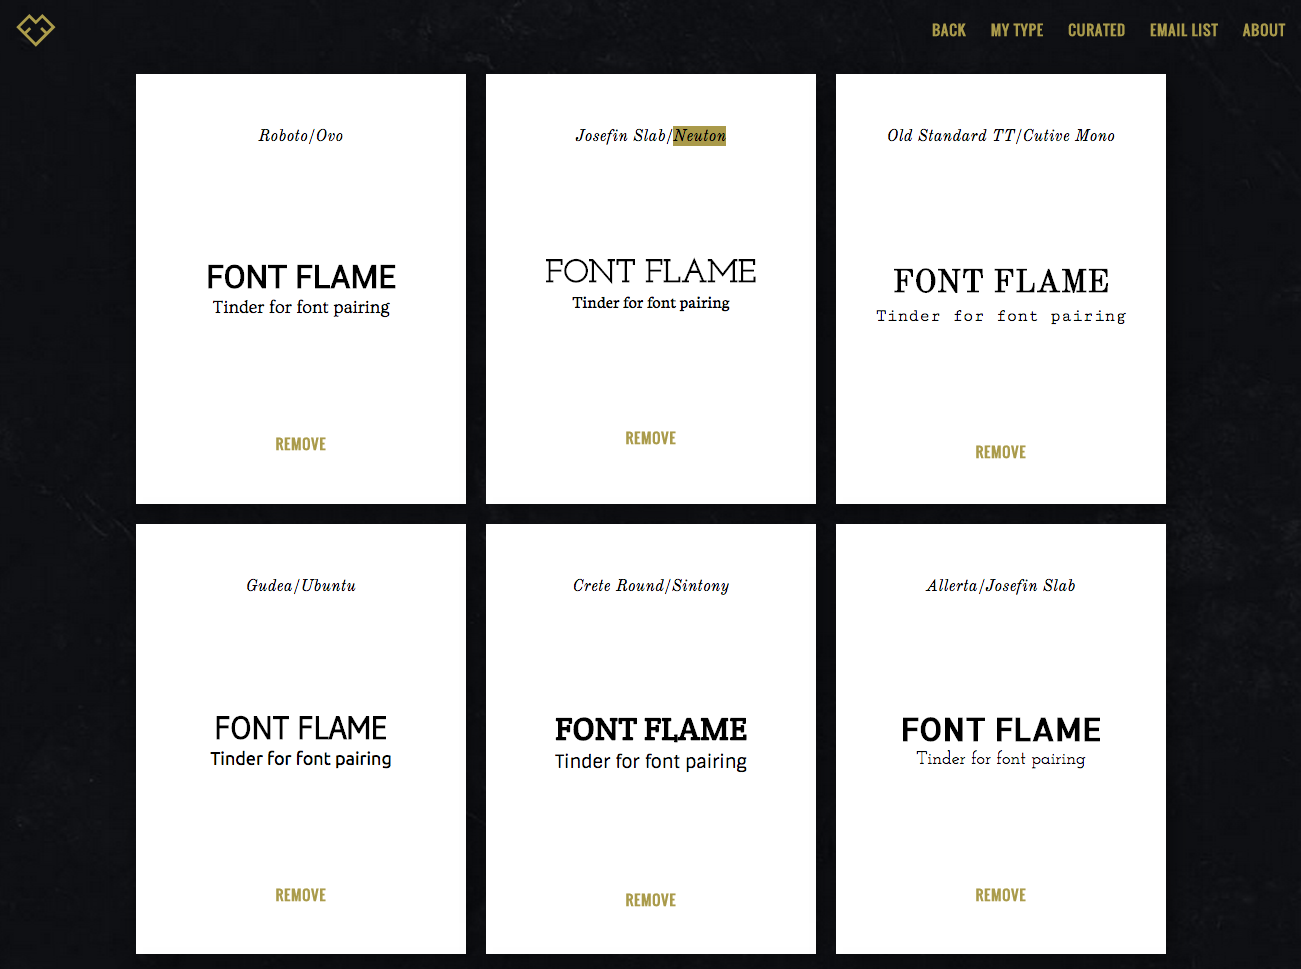 Font Flame - its like Tinder for font pairings | Font